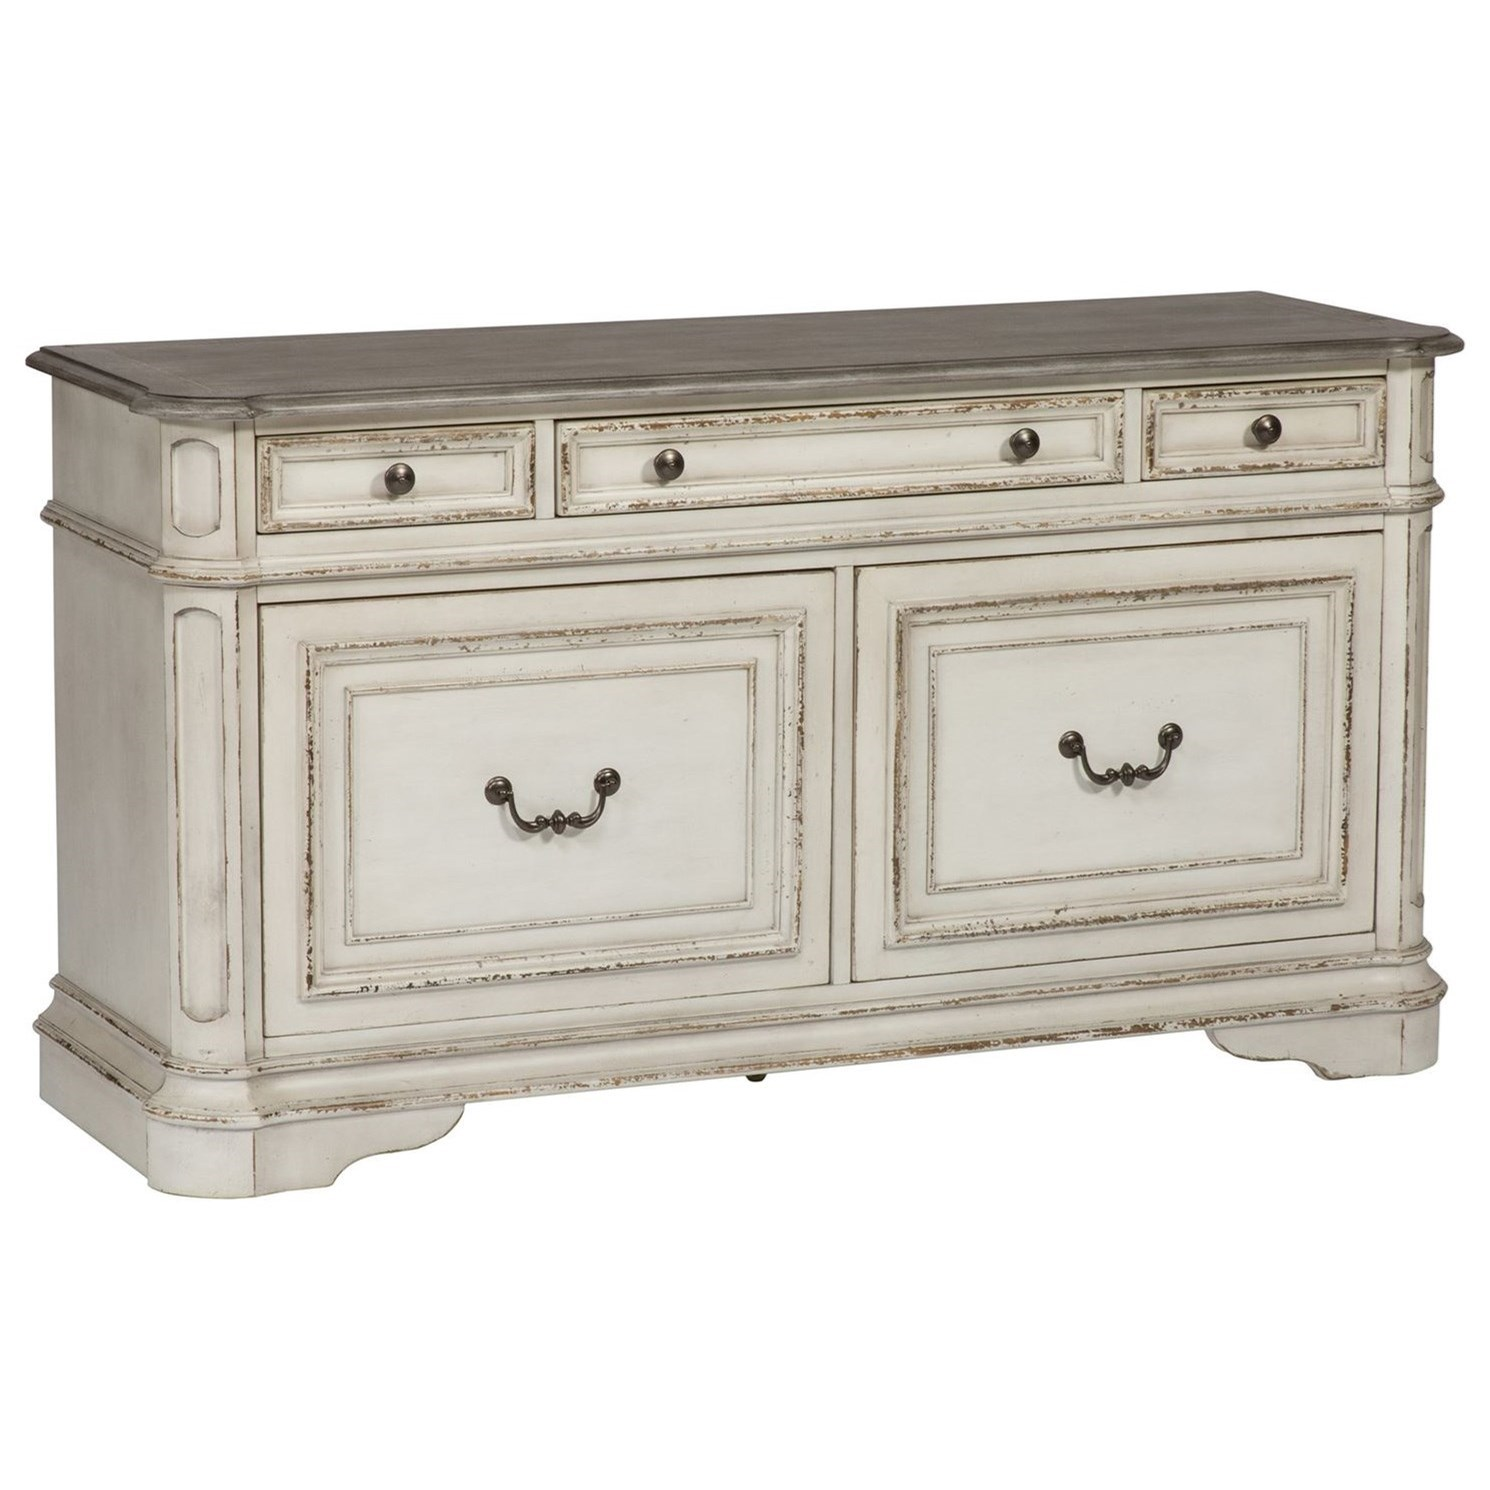 Magnolia Manor Office 5 Drawer Credenza by Liberty Furniture at Northeast Factory Direct